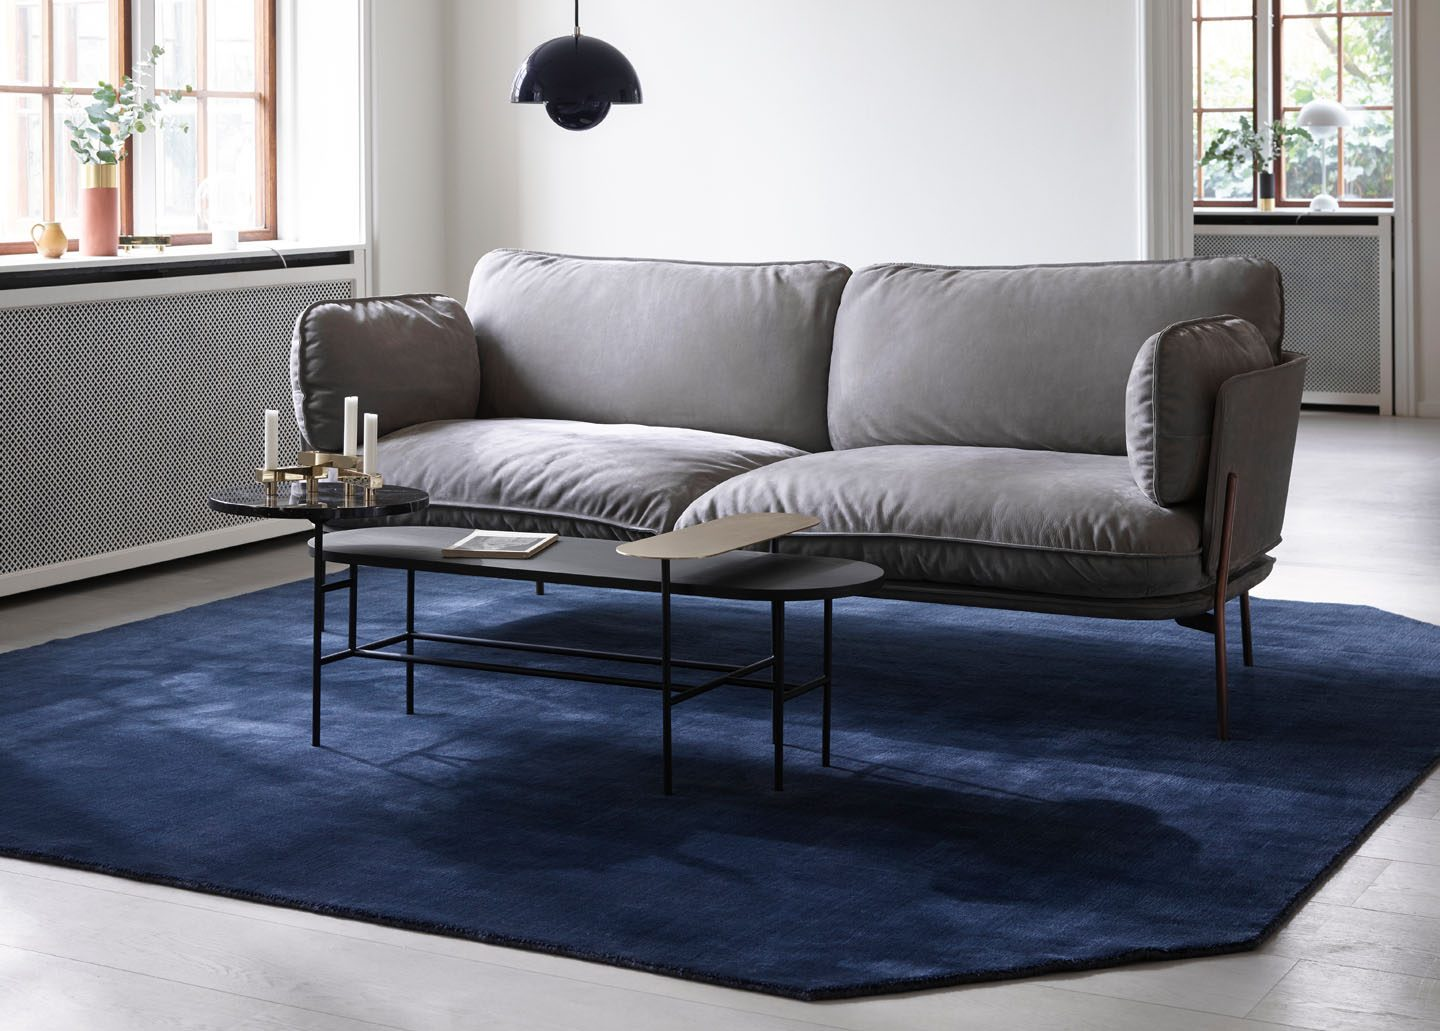 CLOUD TWO SEATER SOFA BY &Tradition